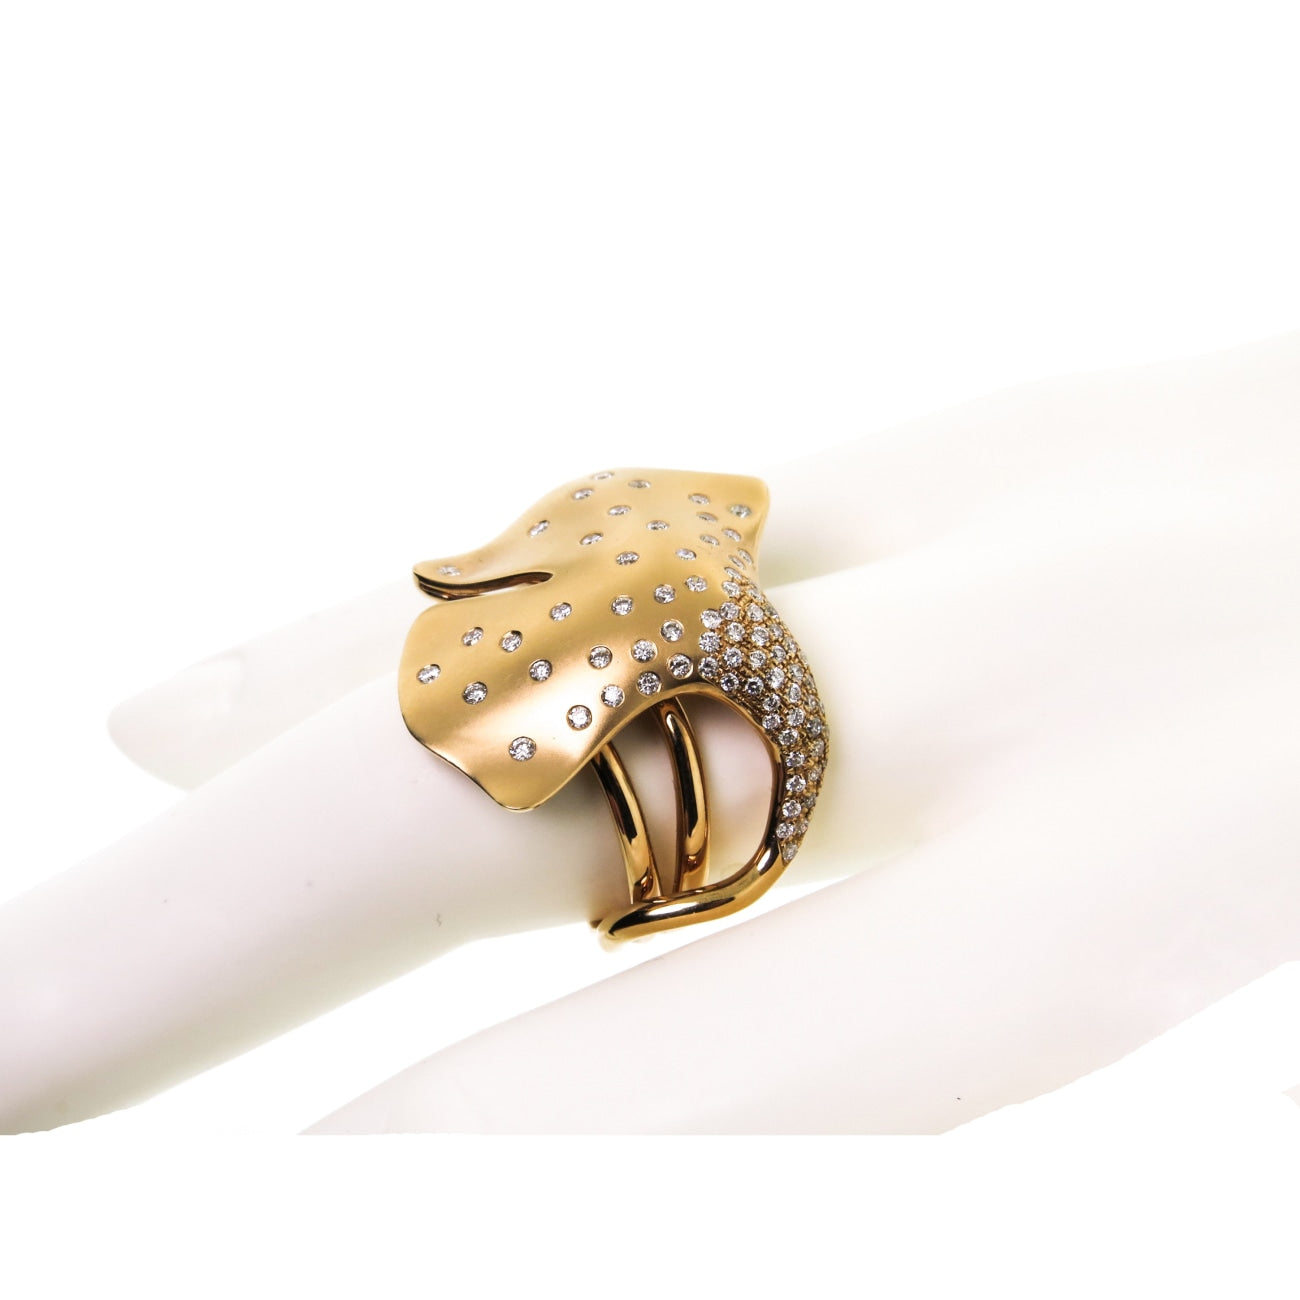 Gatto Jewelry - 18k Rose Gold Ginkgo Ring by Gatto | Manfredi Jewels